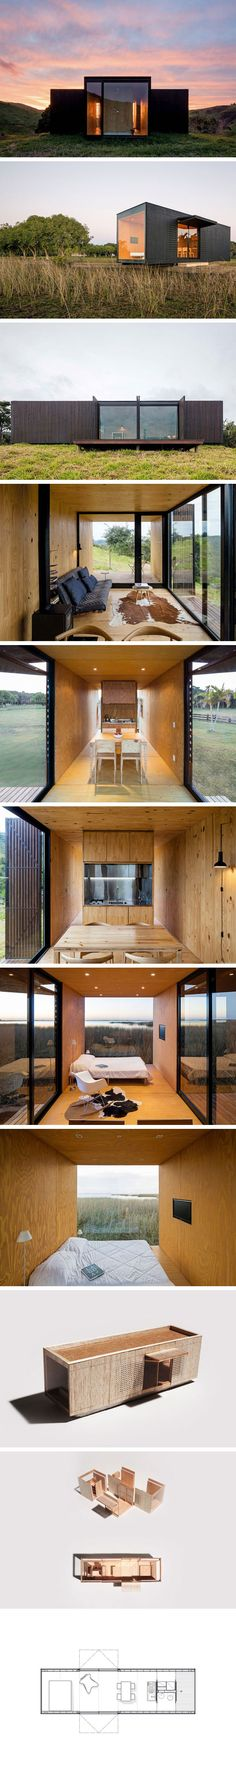 Модульный дом Minimod от MAPA Architects  #tinyhomesdigest #tinyhouse #smallhouse #ecohouse #countrylife #backyard